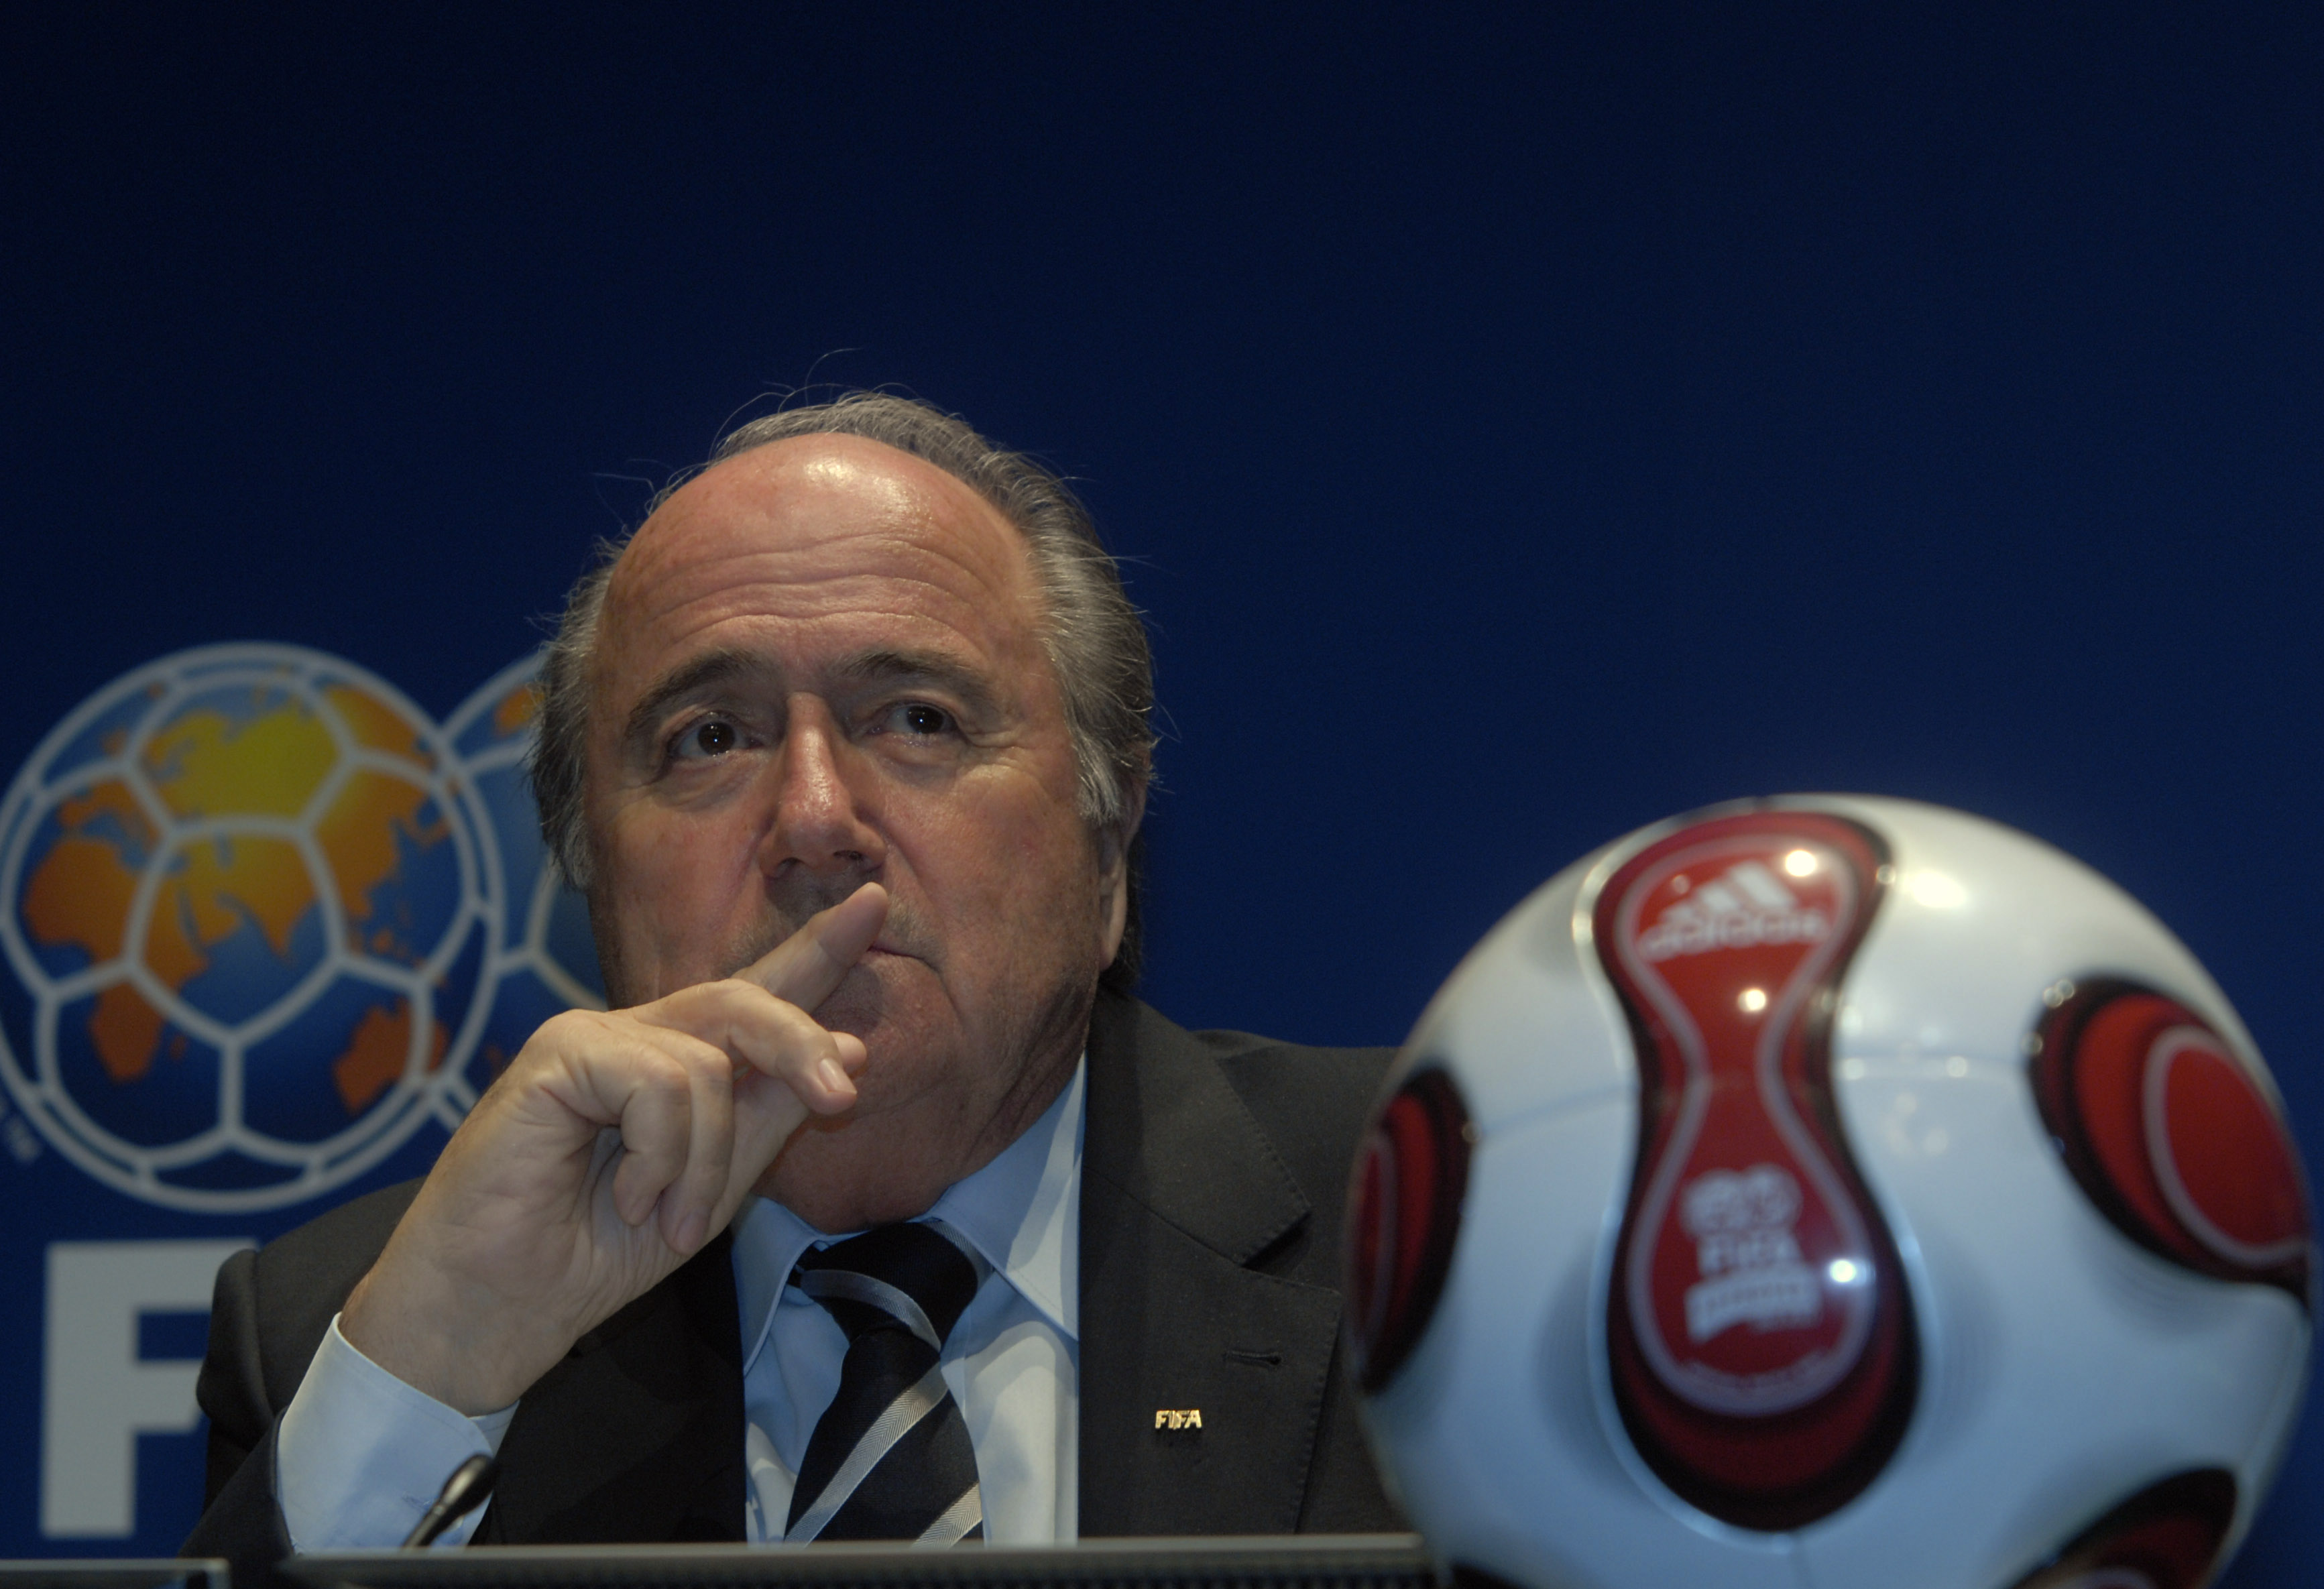 FIFA President Sepp Blatter Faces Backlash From European Powers